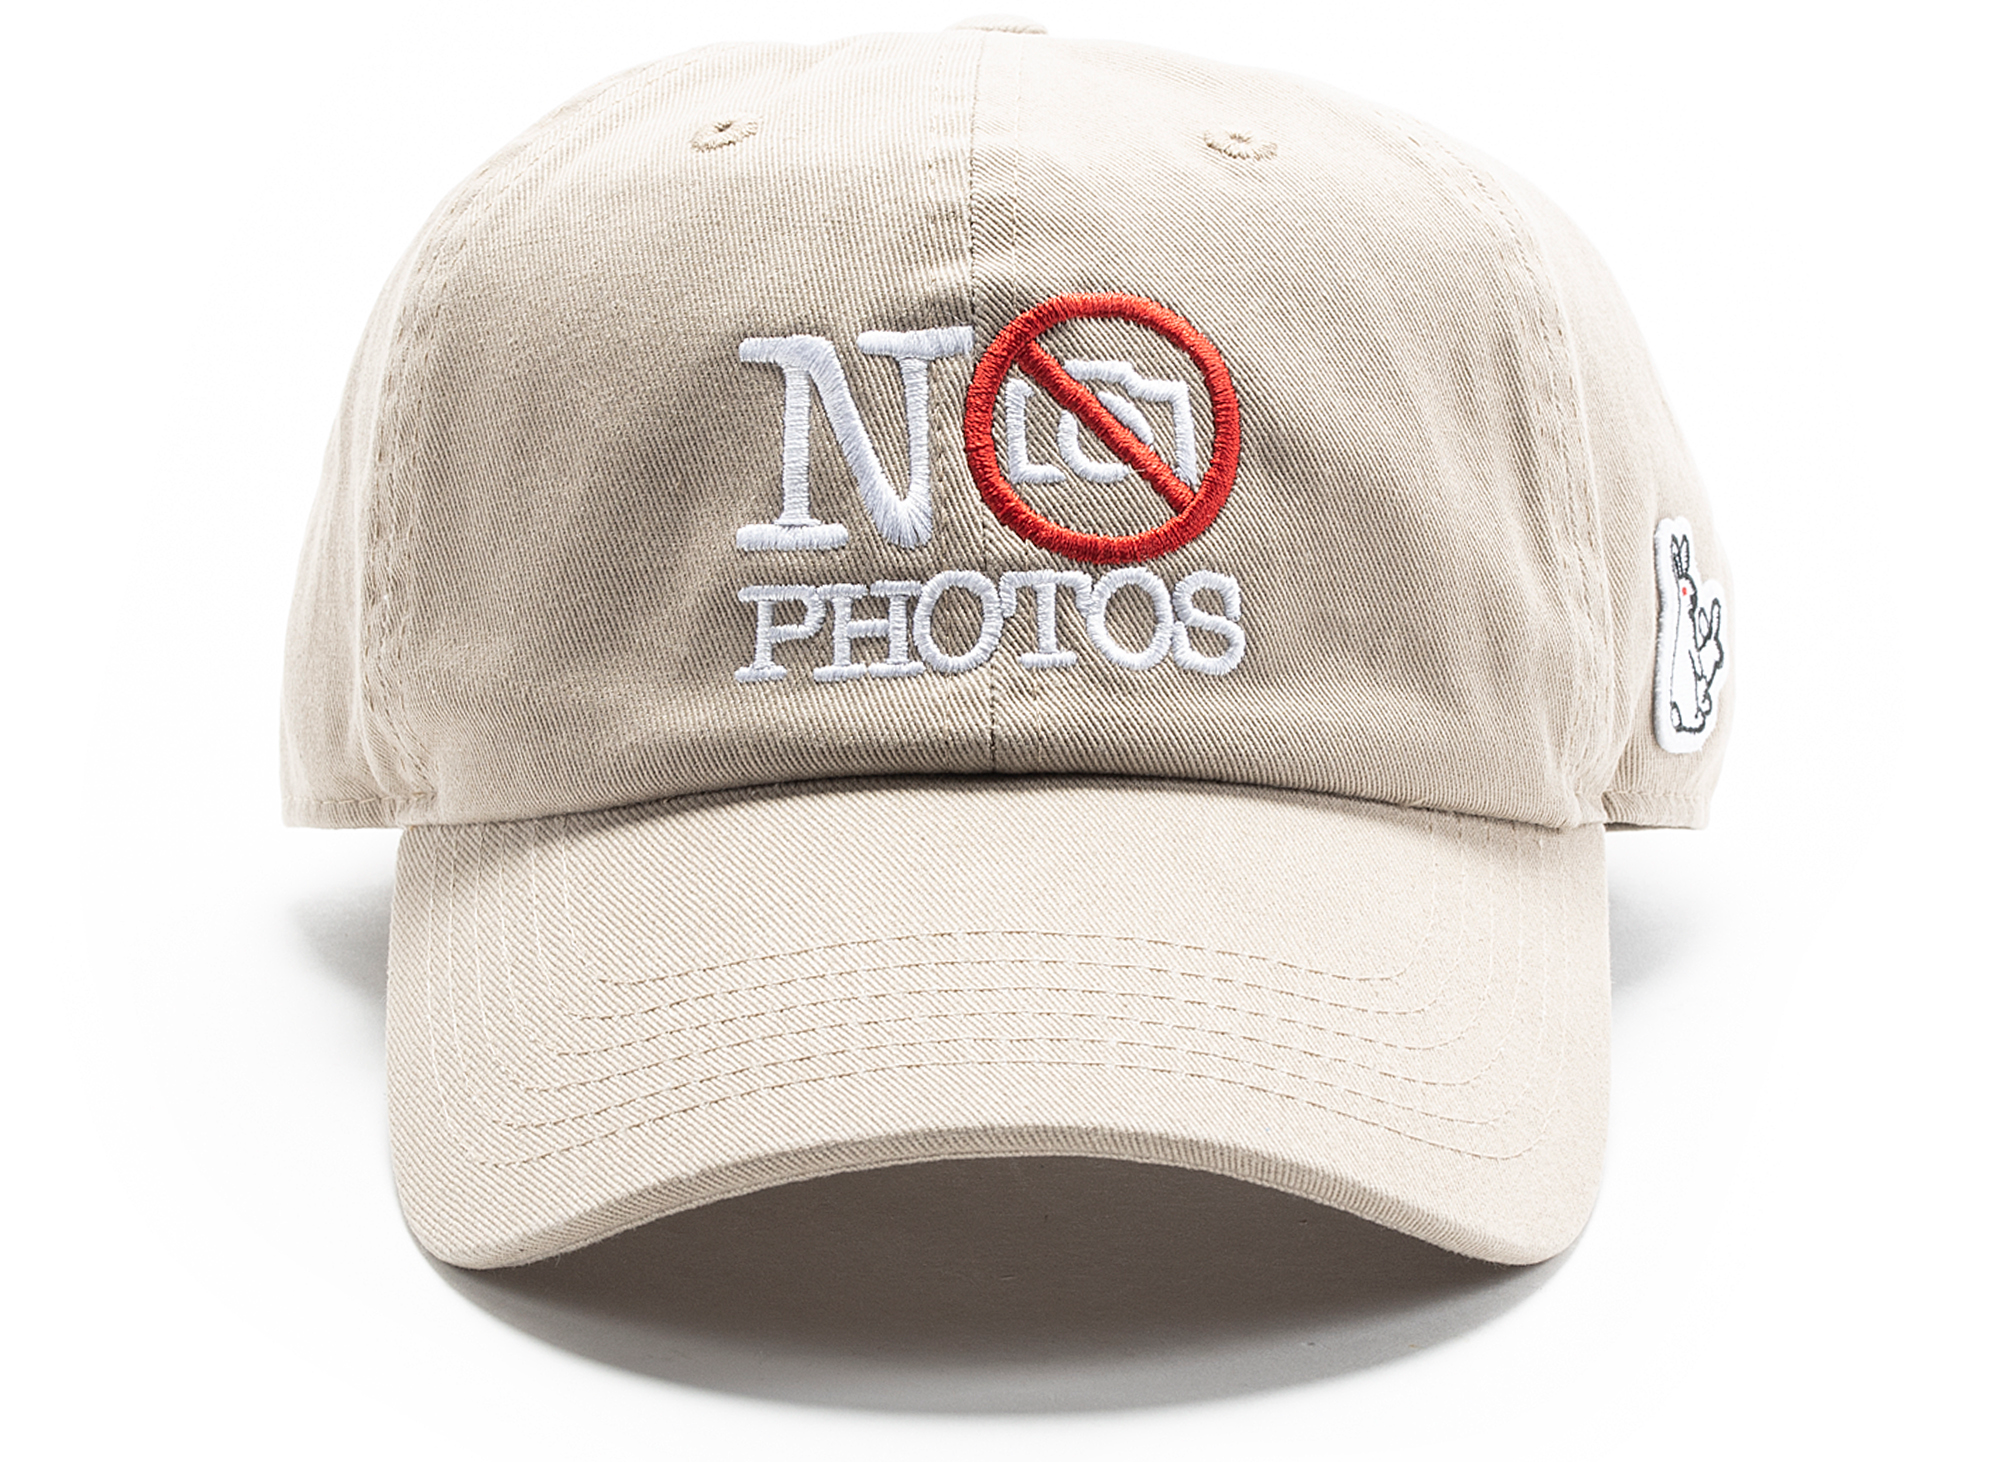 Fucking Rabbits No Photos Six Panel Hat in Beige